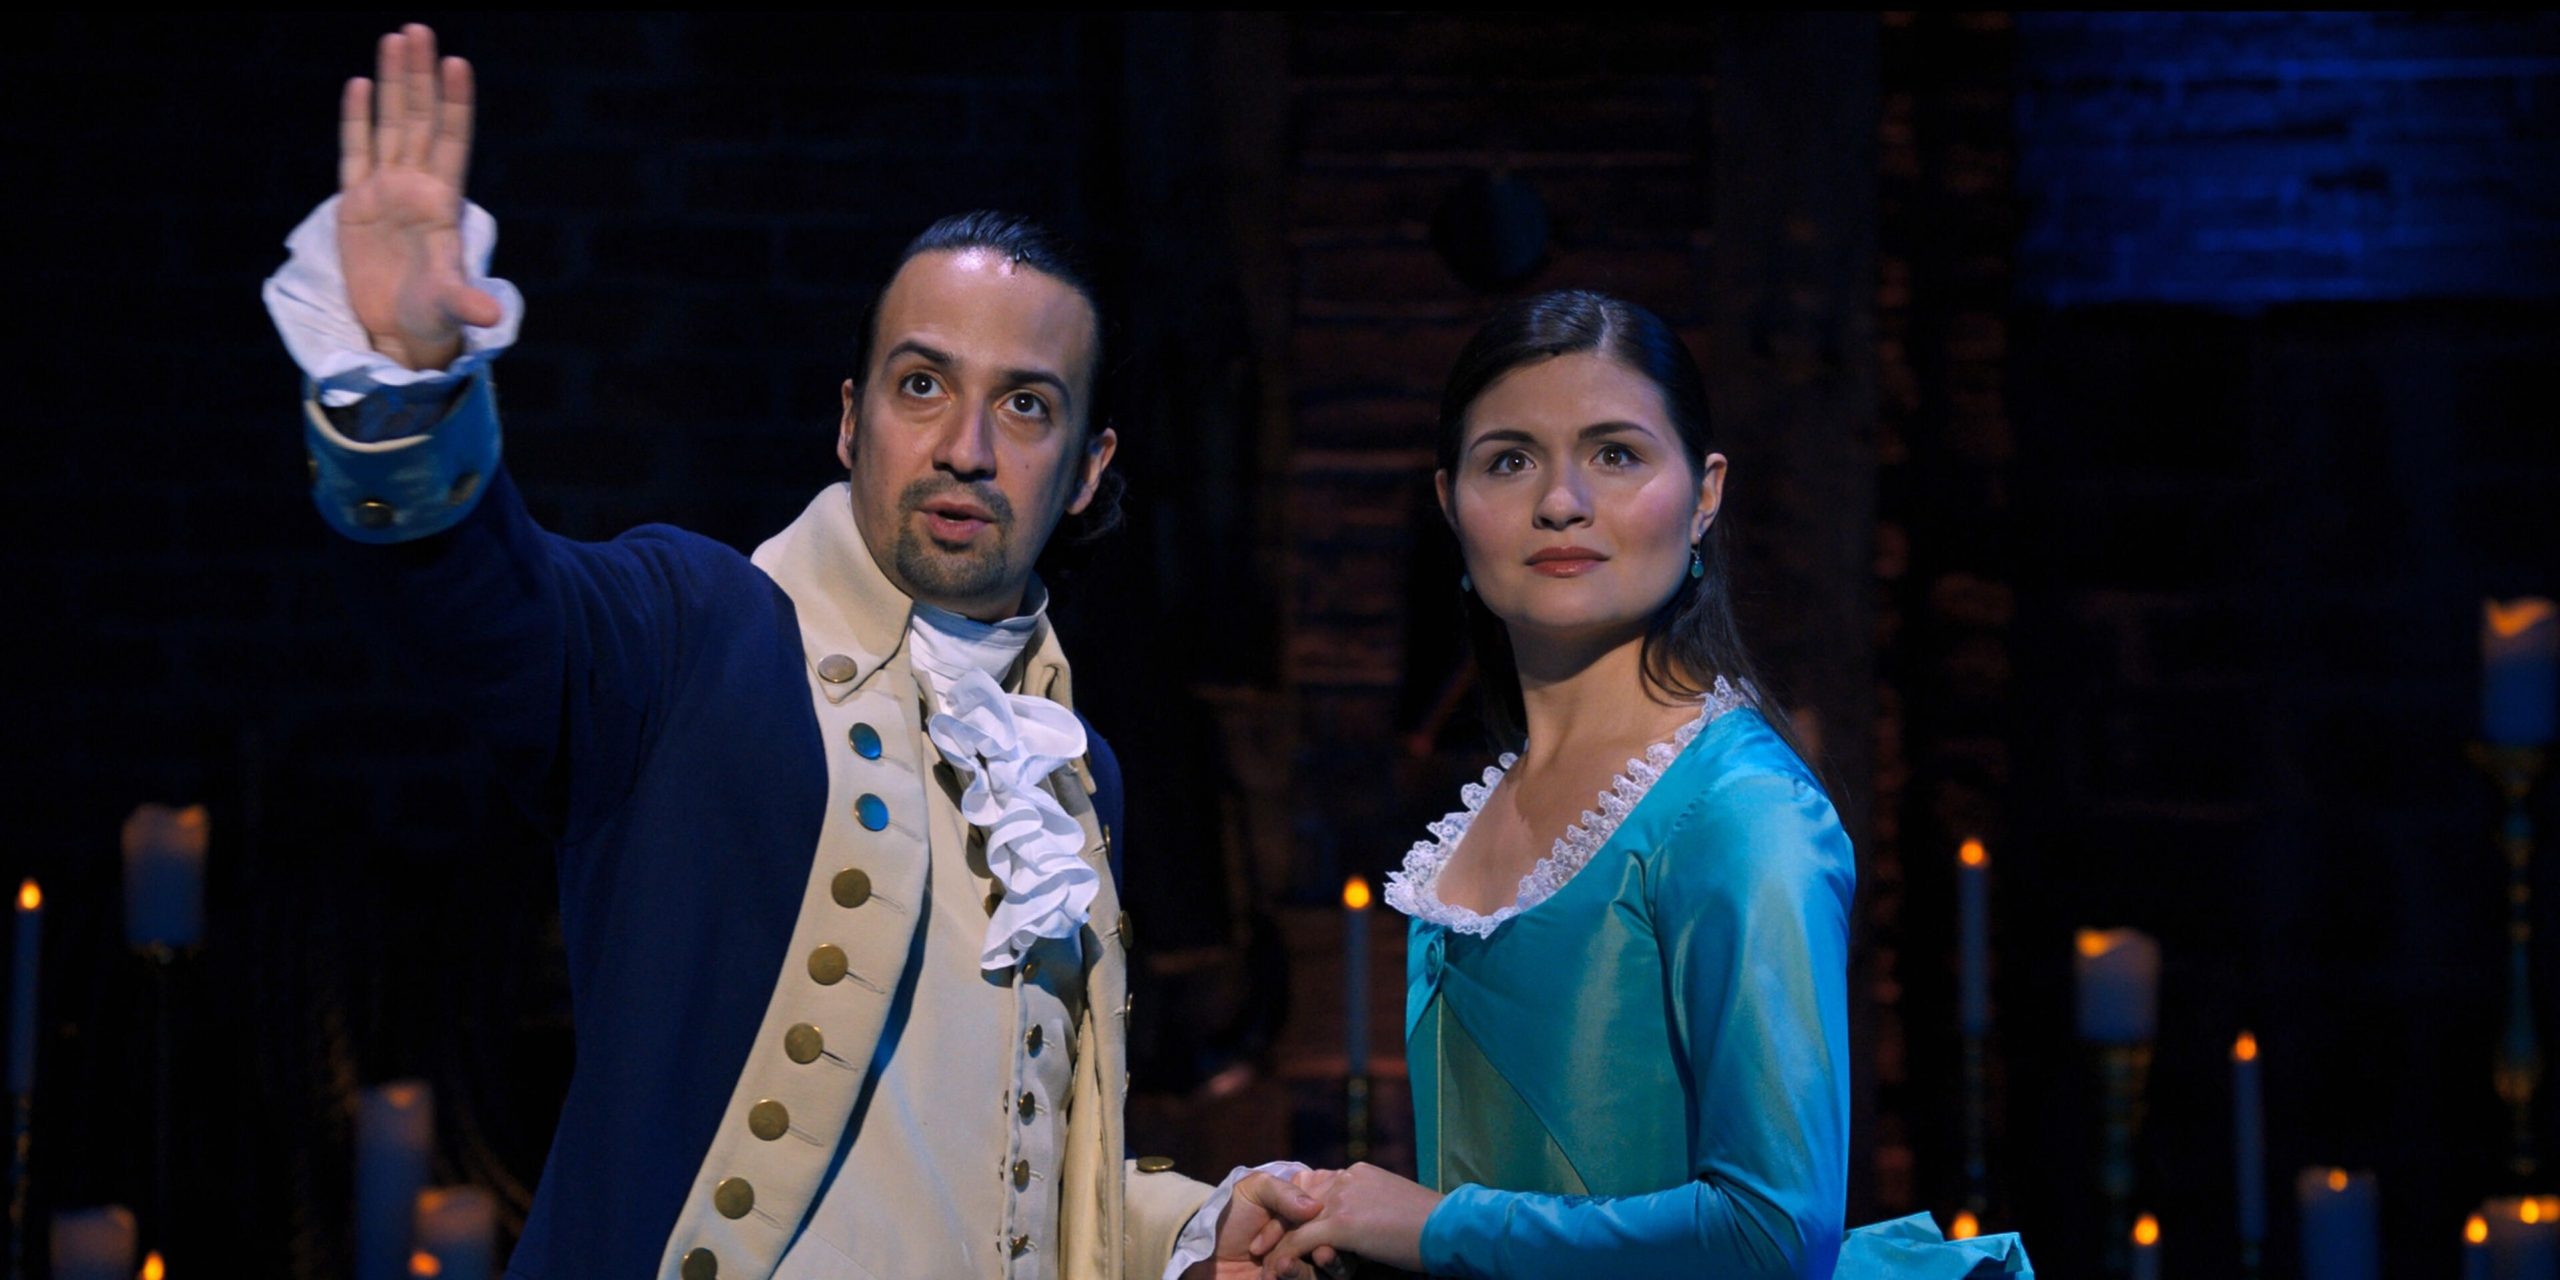 Confused by the Hamilton ending? Here's what Lin-Manuel Miranda says